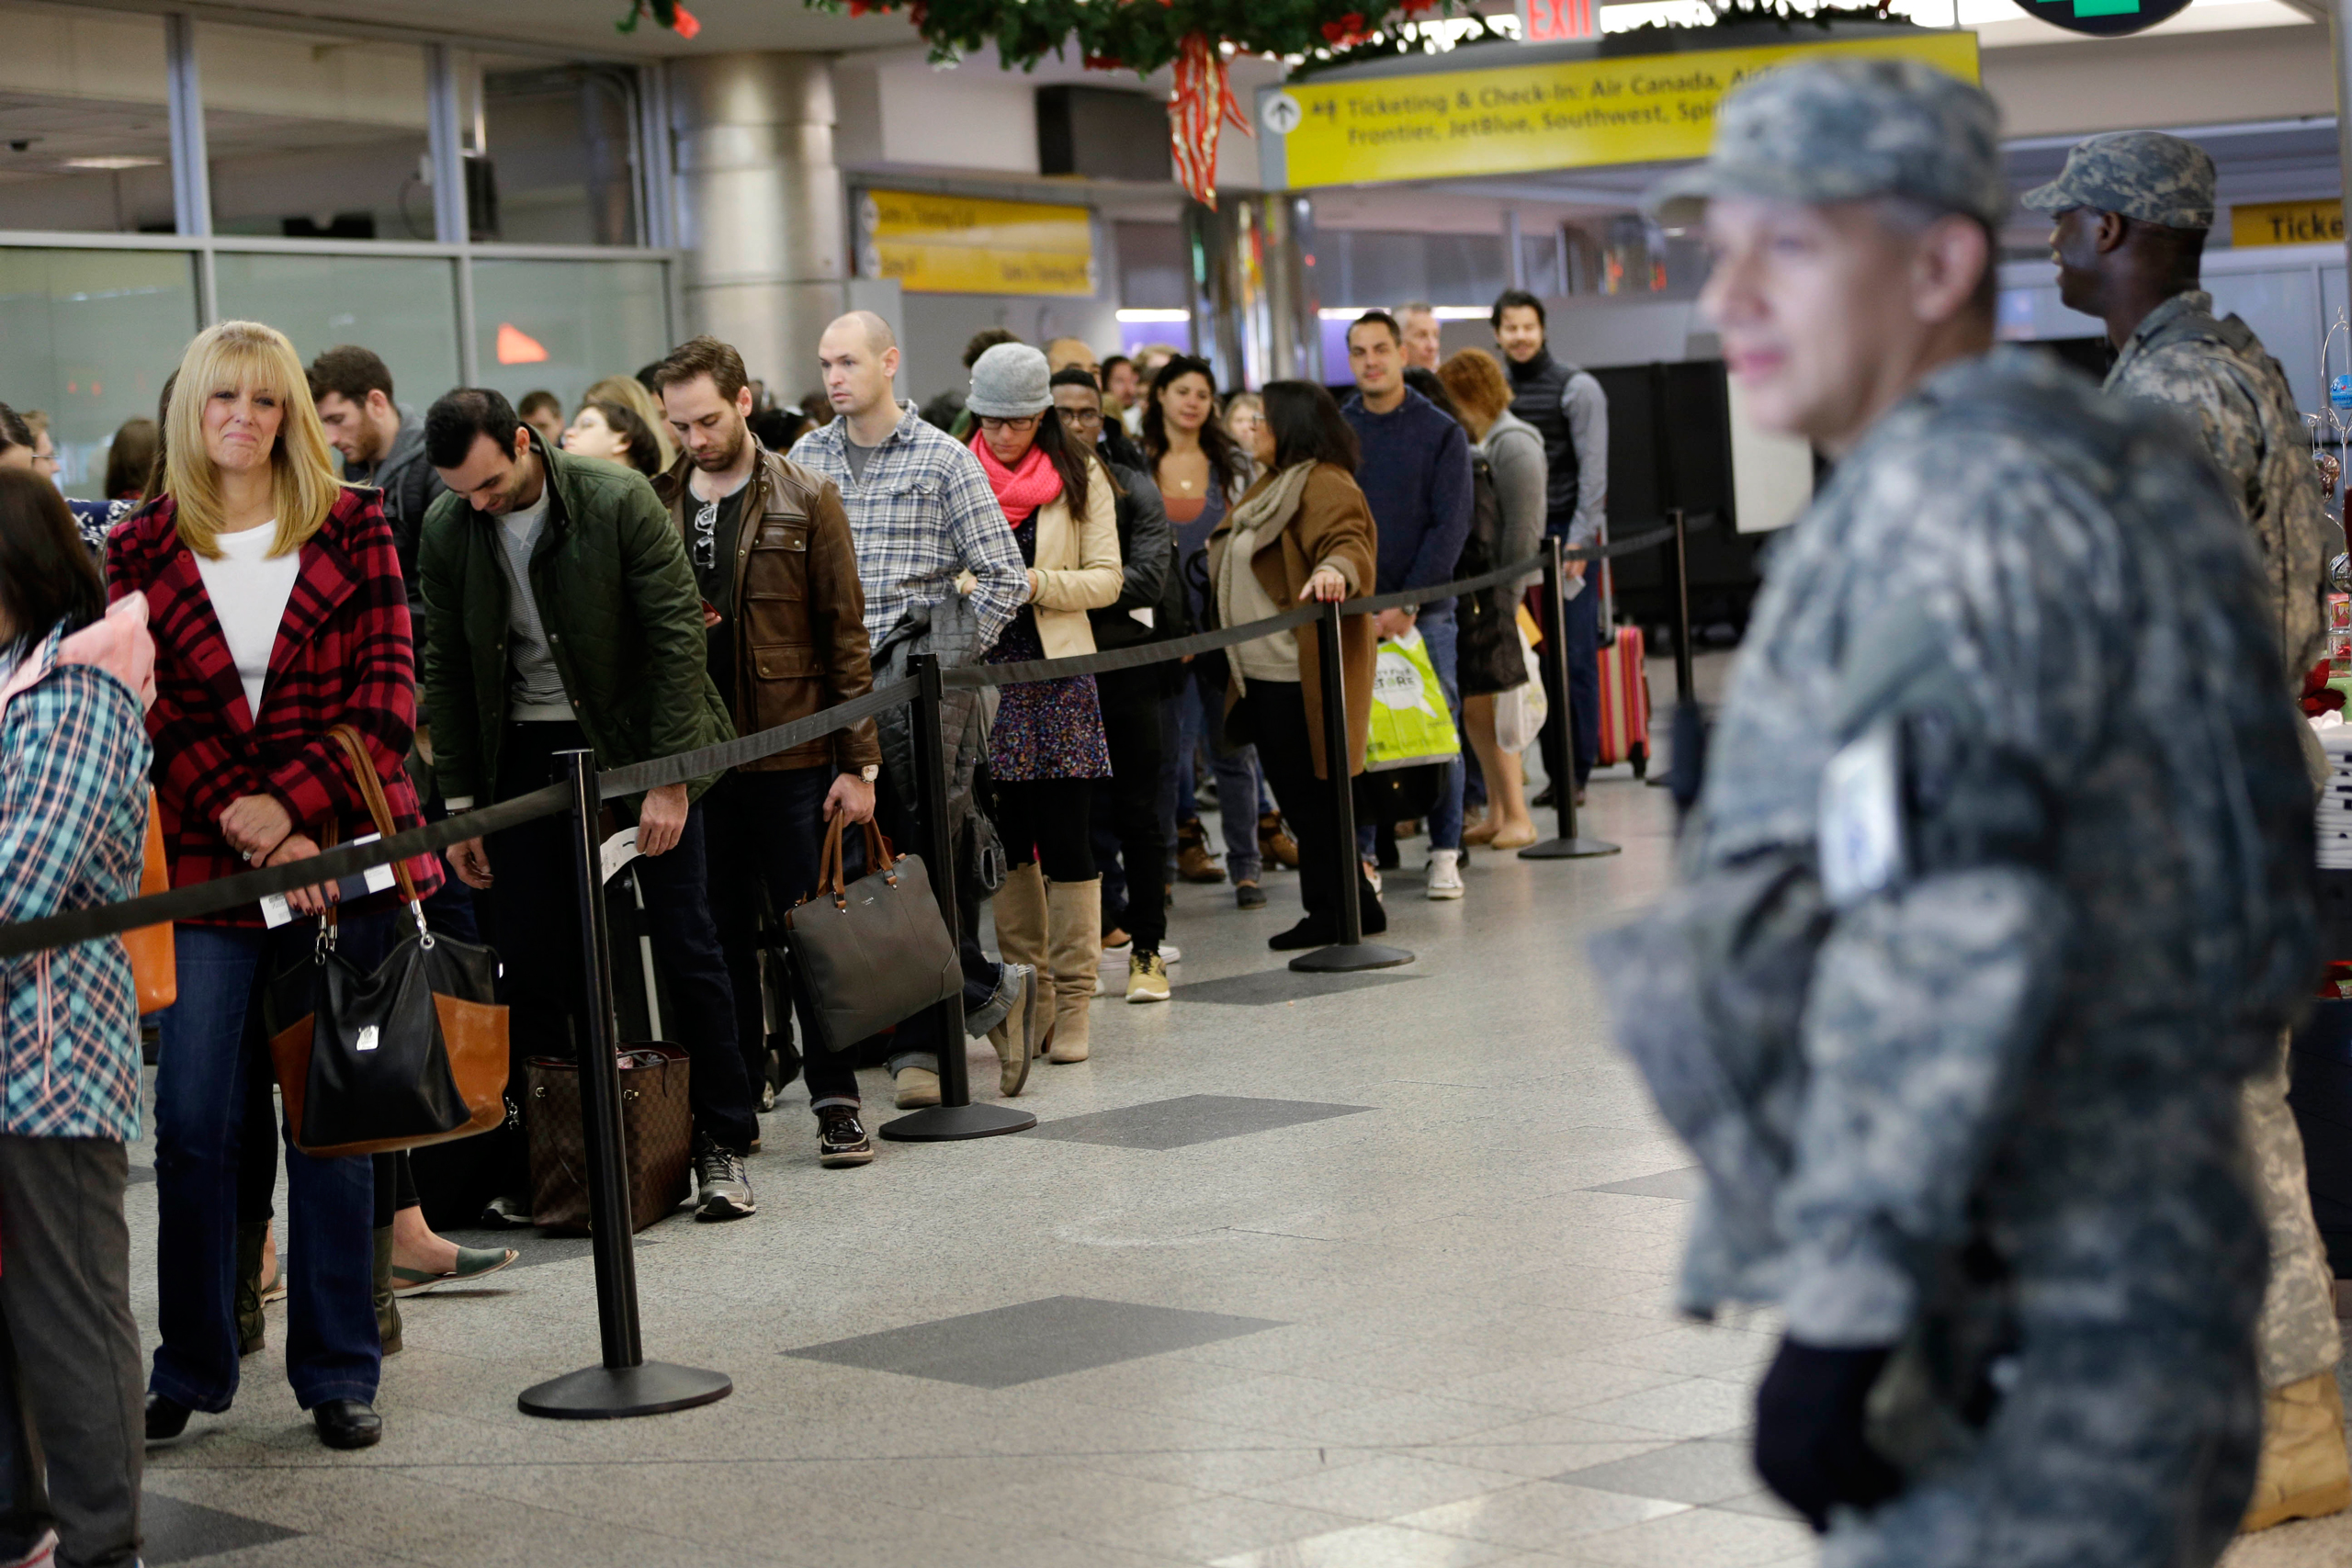 Security personnel looks on as passengers wait to pass through airline security at LaGuardia Airport in New York, Wednesday, Nov. 25, 2015. An expanded version of America's annual Thanksgiving travel saga was under way Wednesday with gas prices low and terrorism fears high. An estimated 46.9 million Americans are expected to take a car, plane, bus or train at least 50 miles from home over the long holiday weekend, according to the motoring organization AAA. That would be an increase of more than 300,000 people over last year, and the most travelers since 2007. (AP Photo/Seth Wenig)